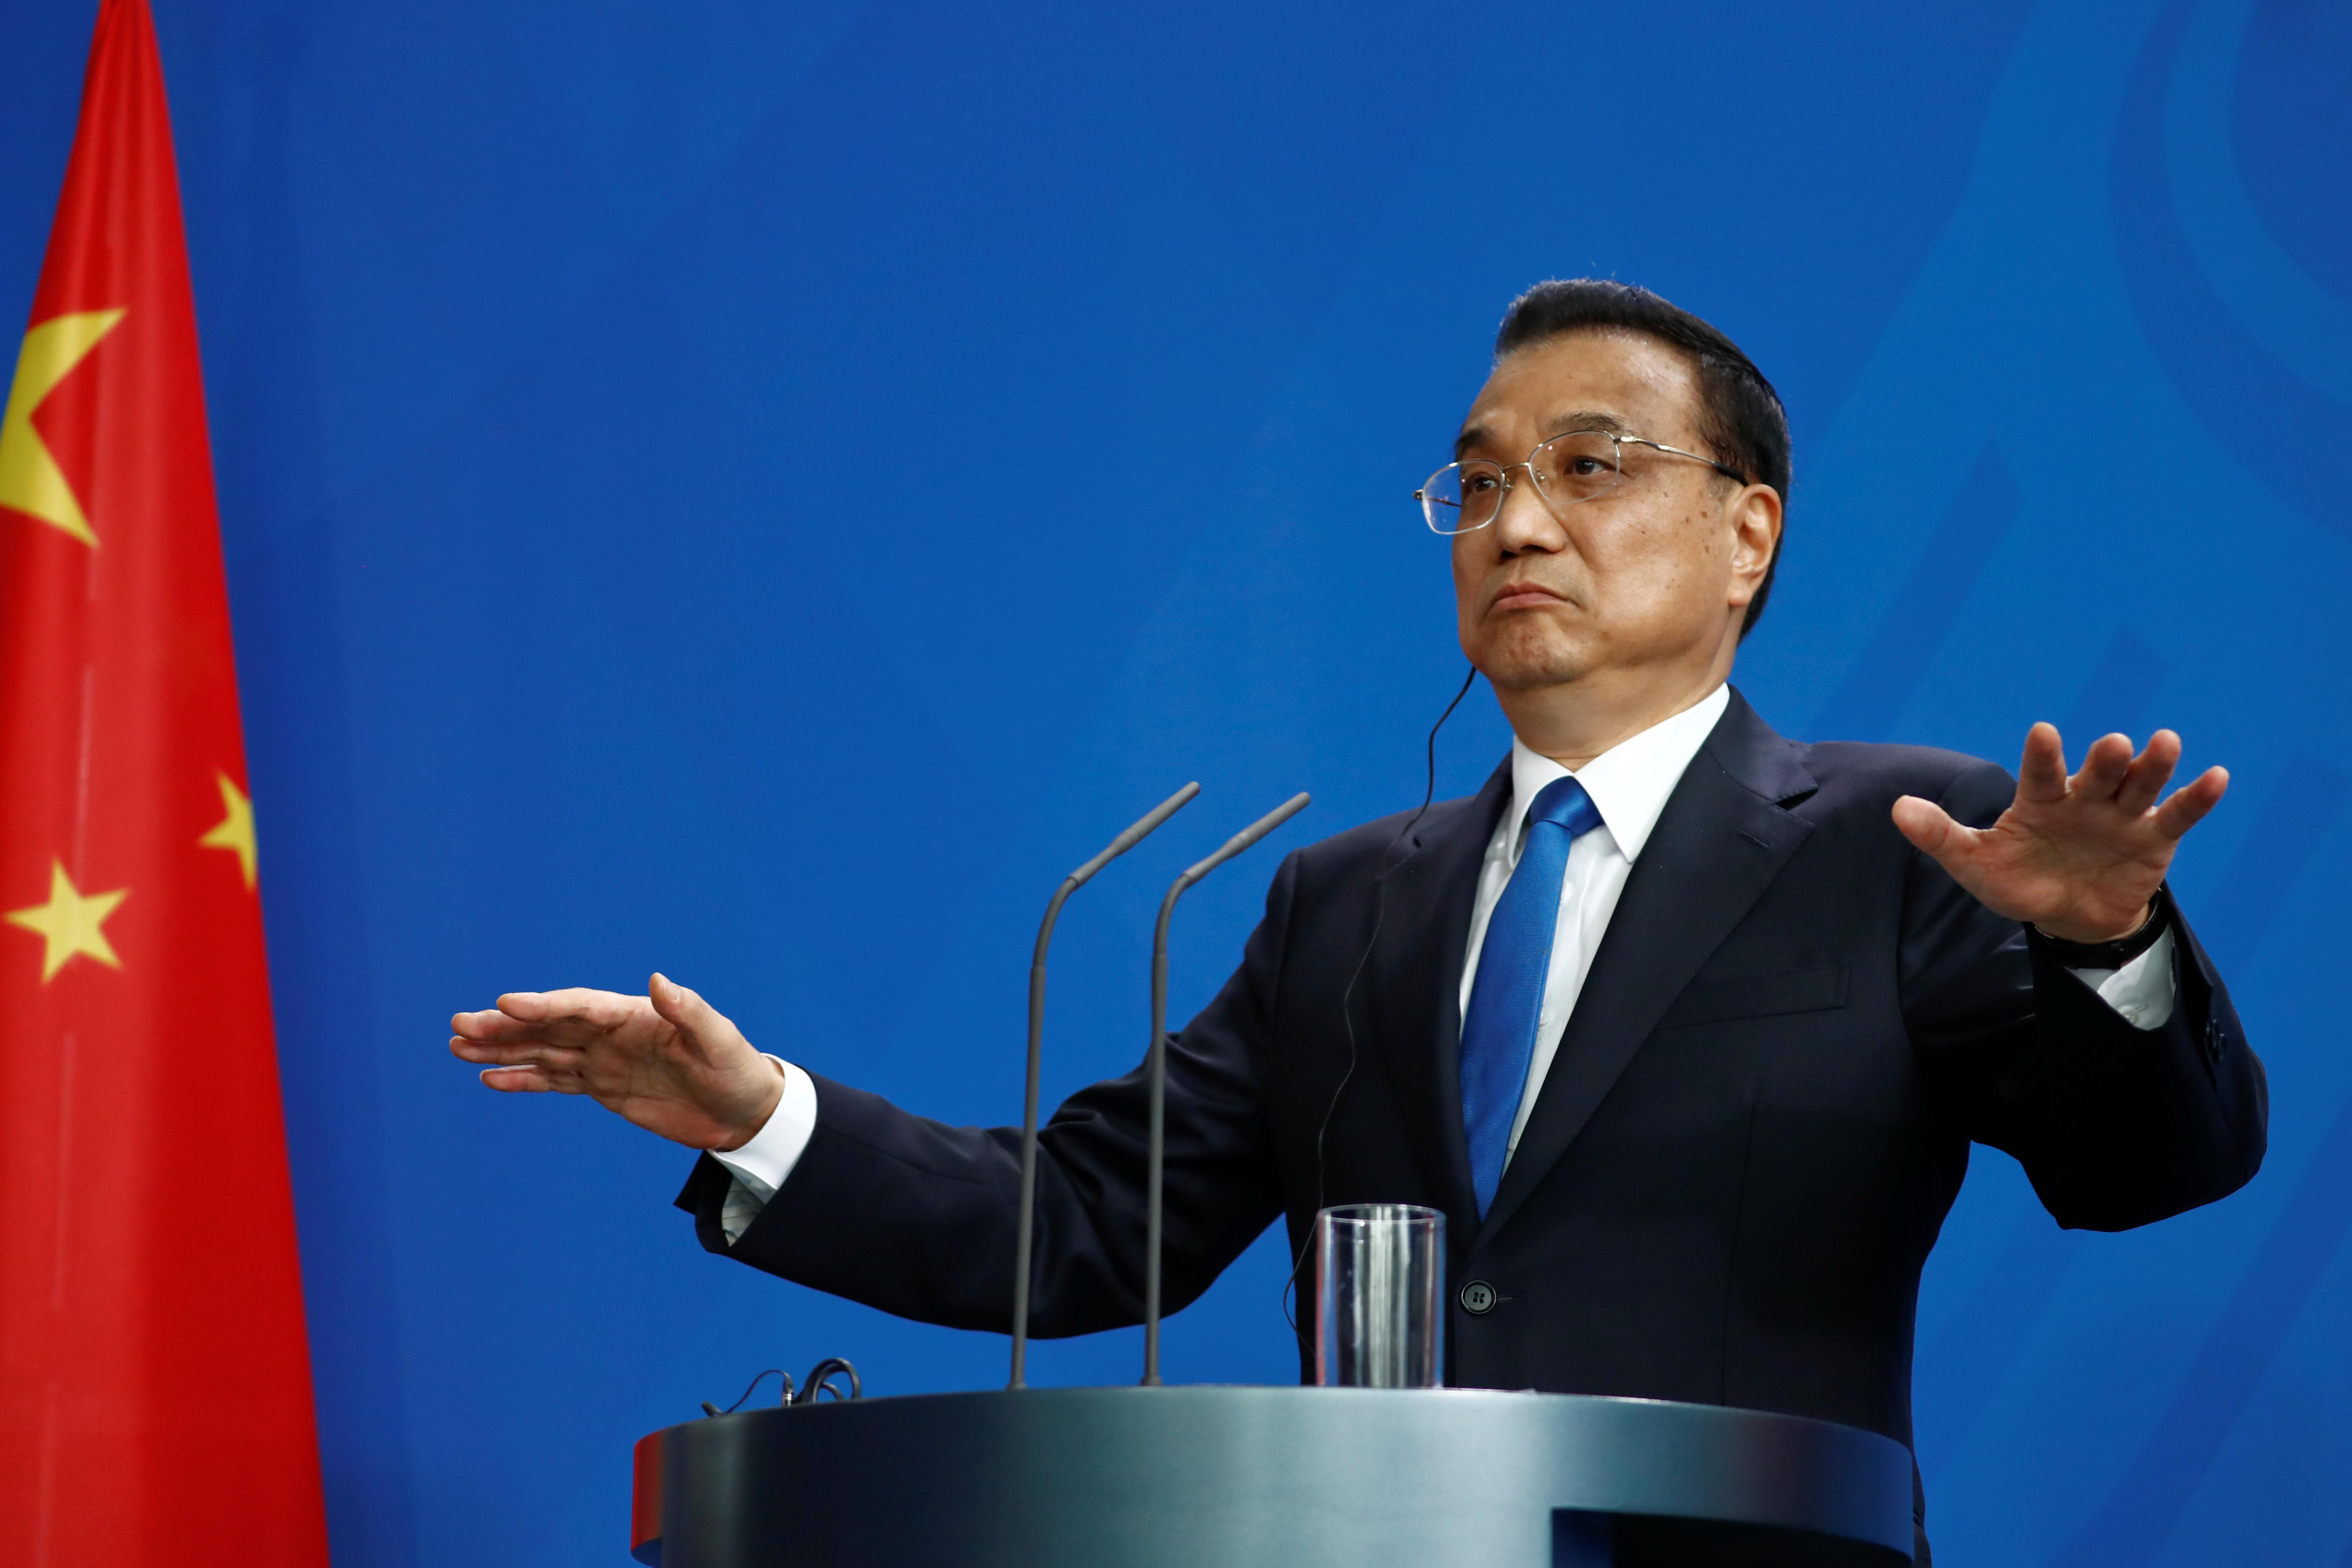 Chinese Prime Minister Li Keqiang reacts as he holds a joint news conference with German Chancellor Angela Merkel (not pictured) at the chancellery in Berlin, Germany, July 9, 2018. Hannibal Hanschke